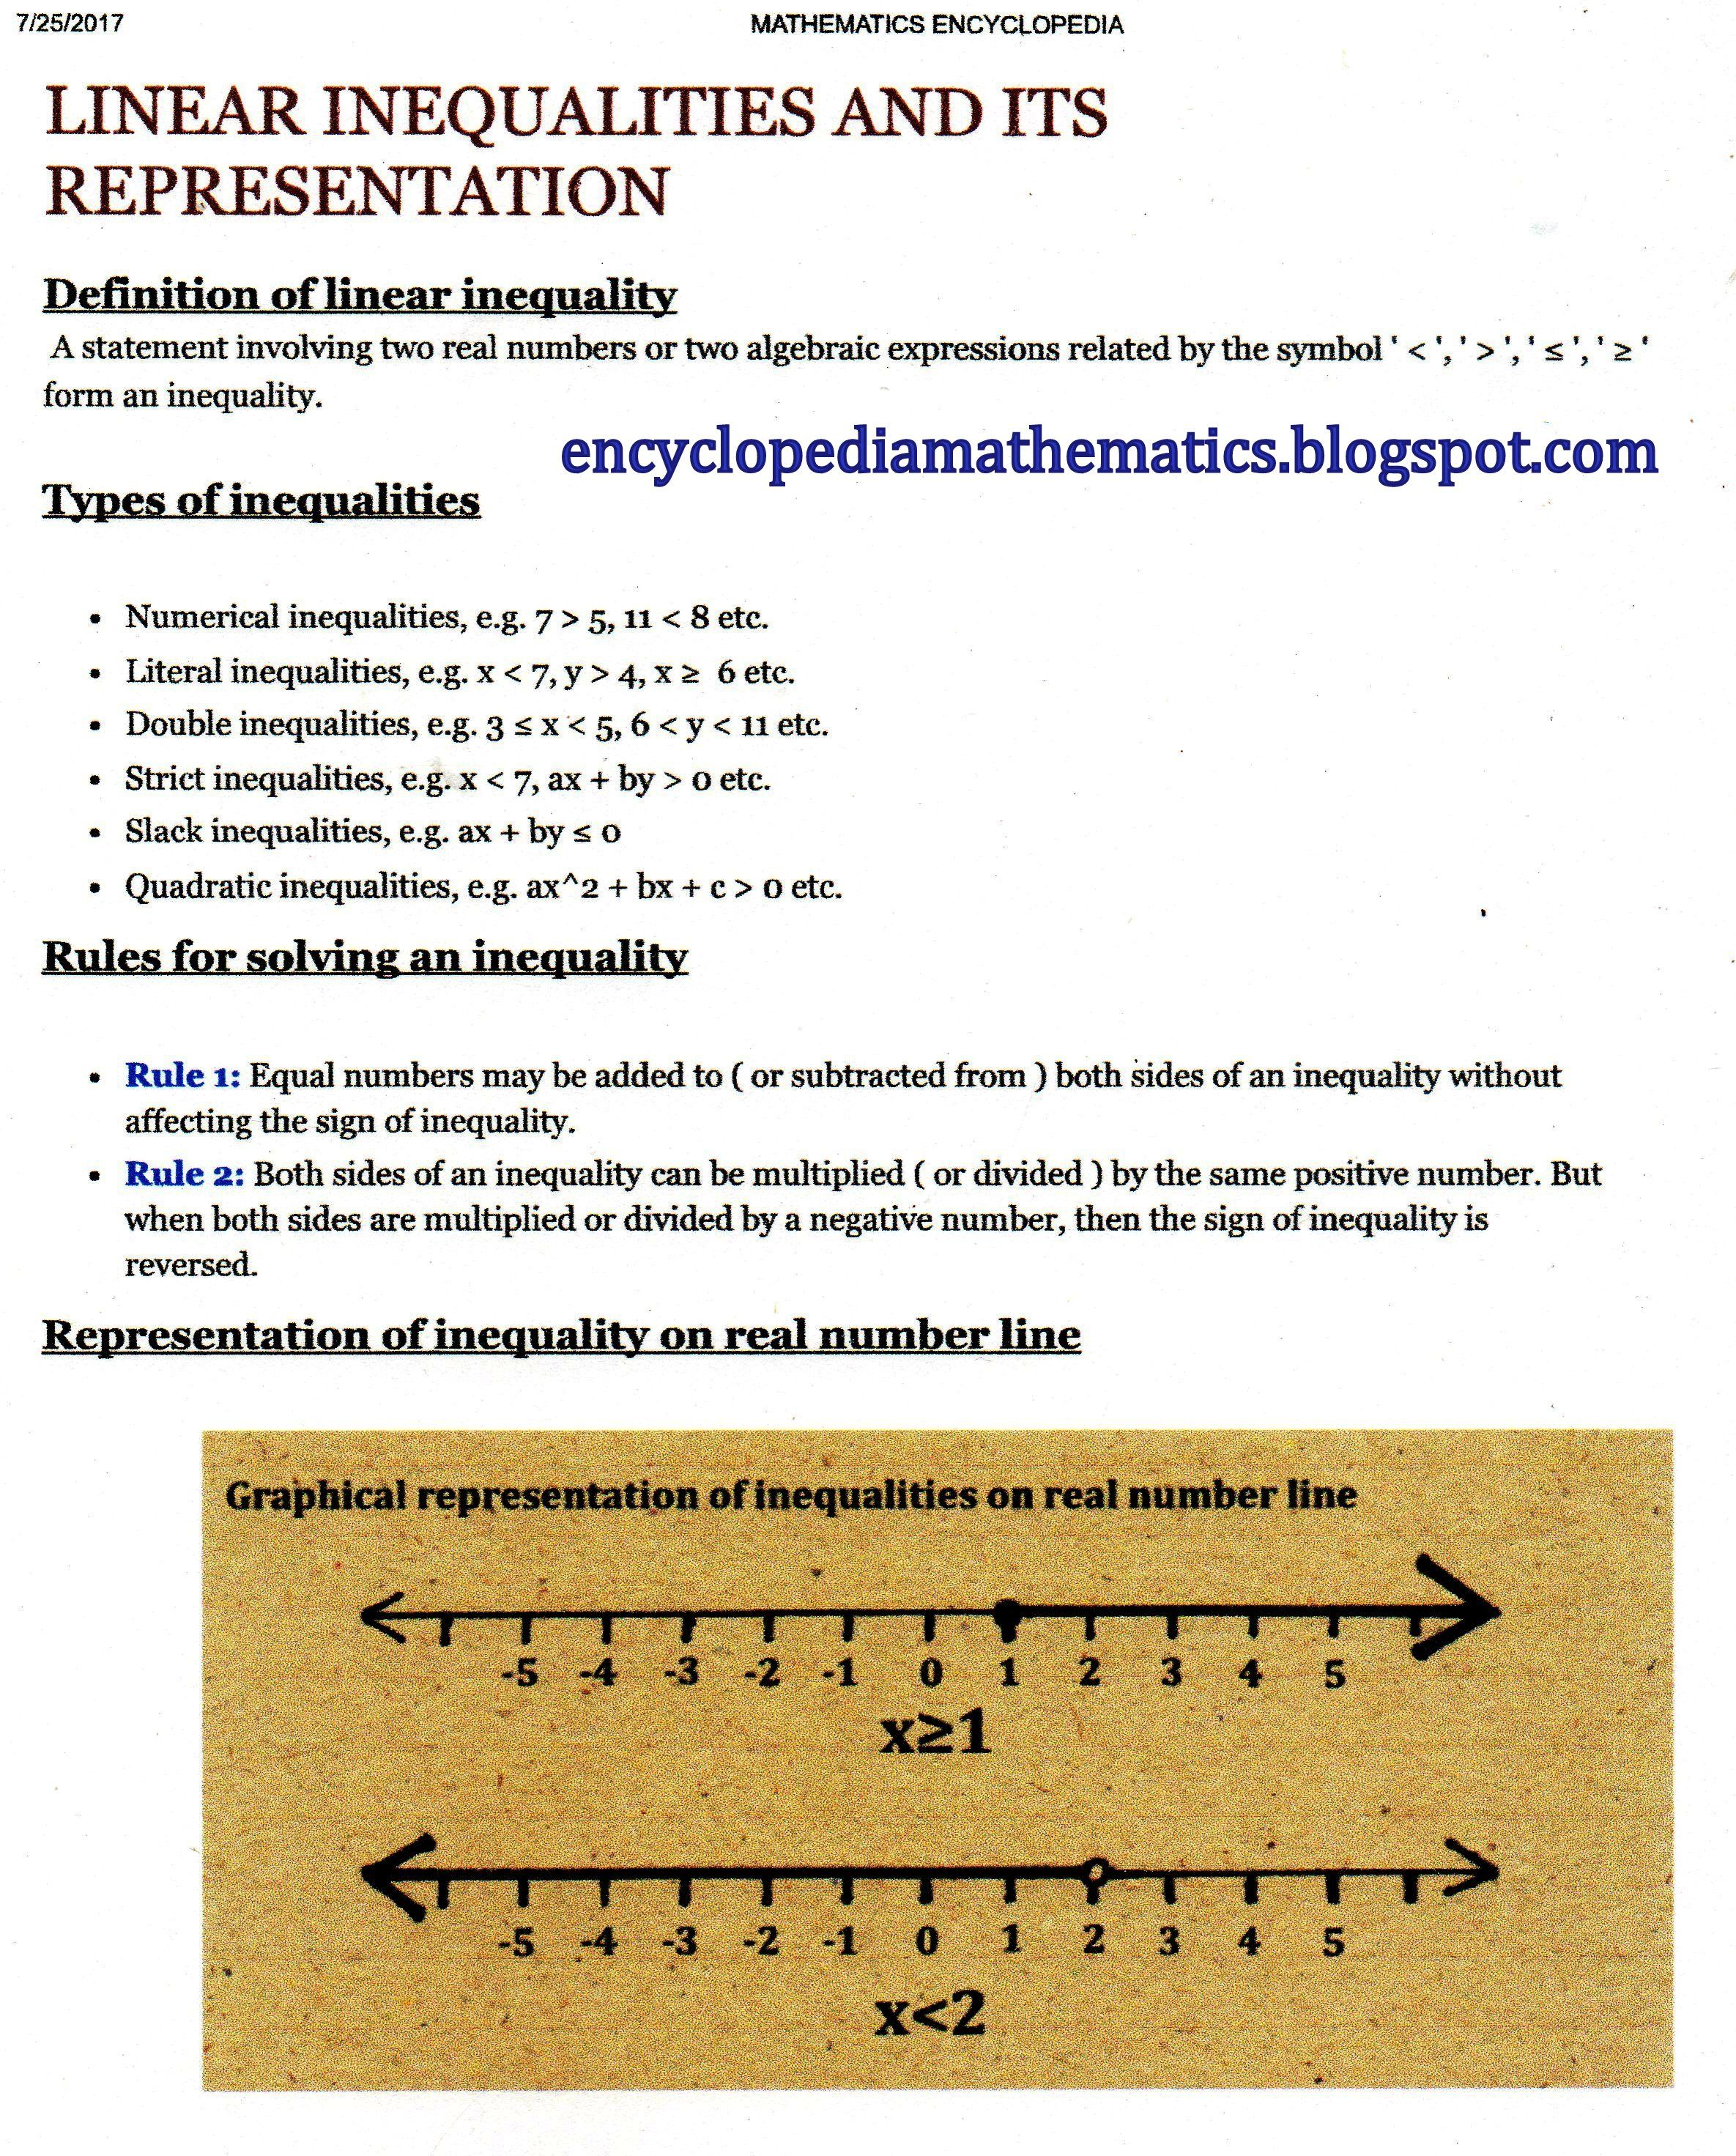 Linear Inequalities And Its Representation Algebraic Expressions Linear Inequalities Mathematics